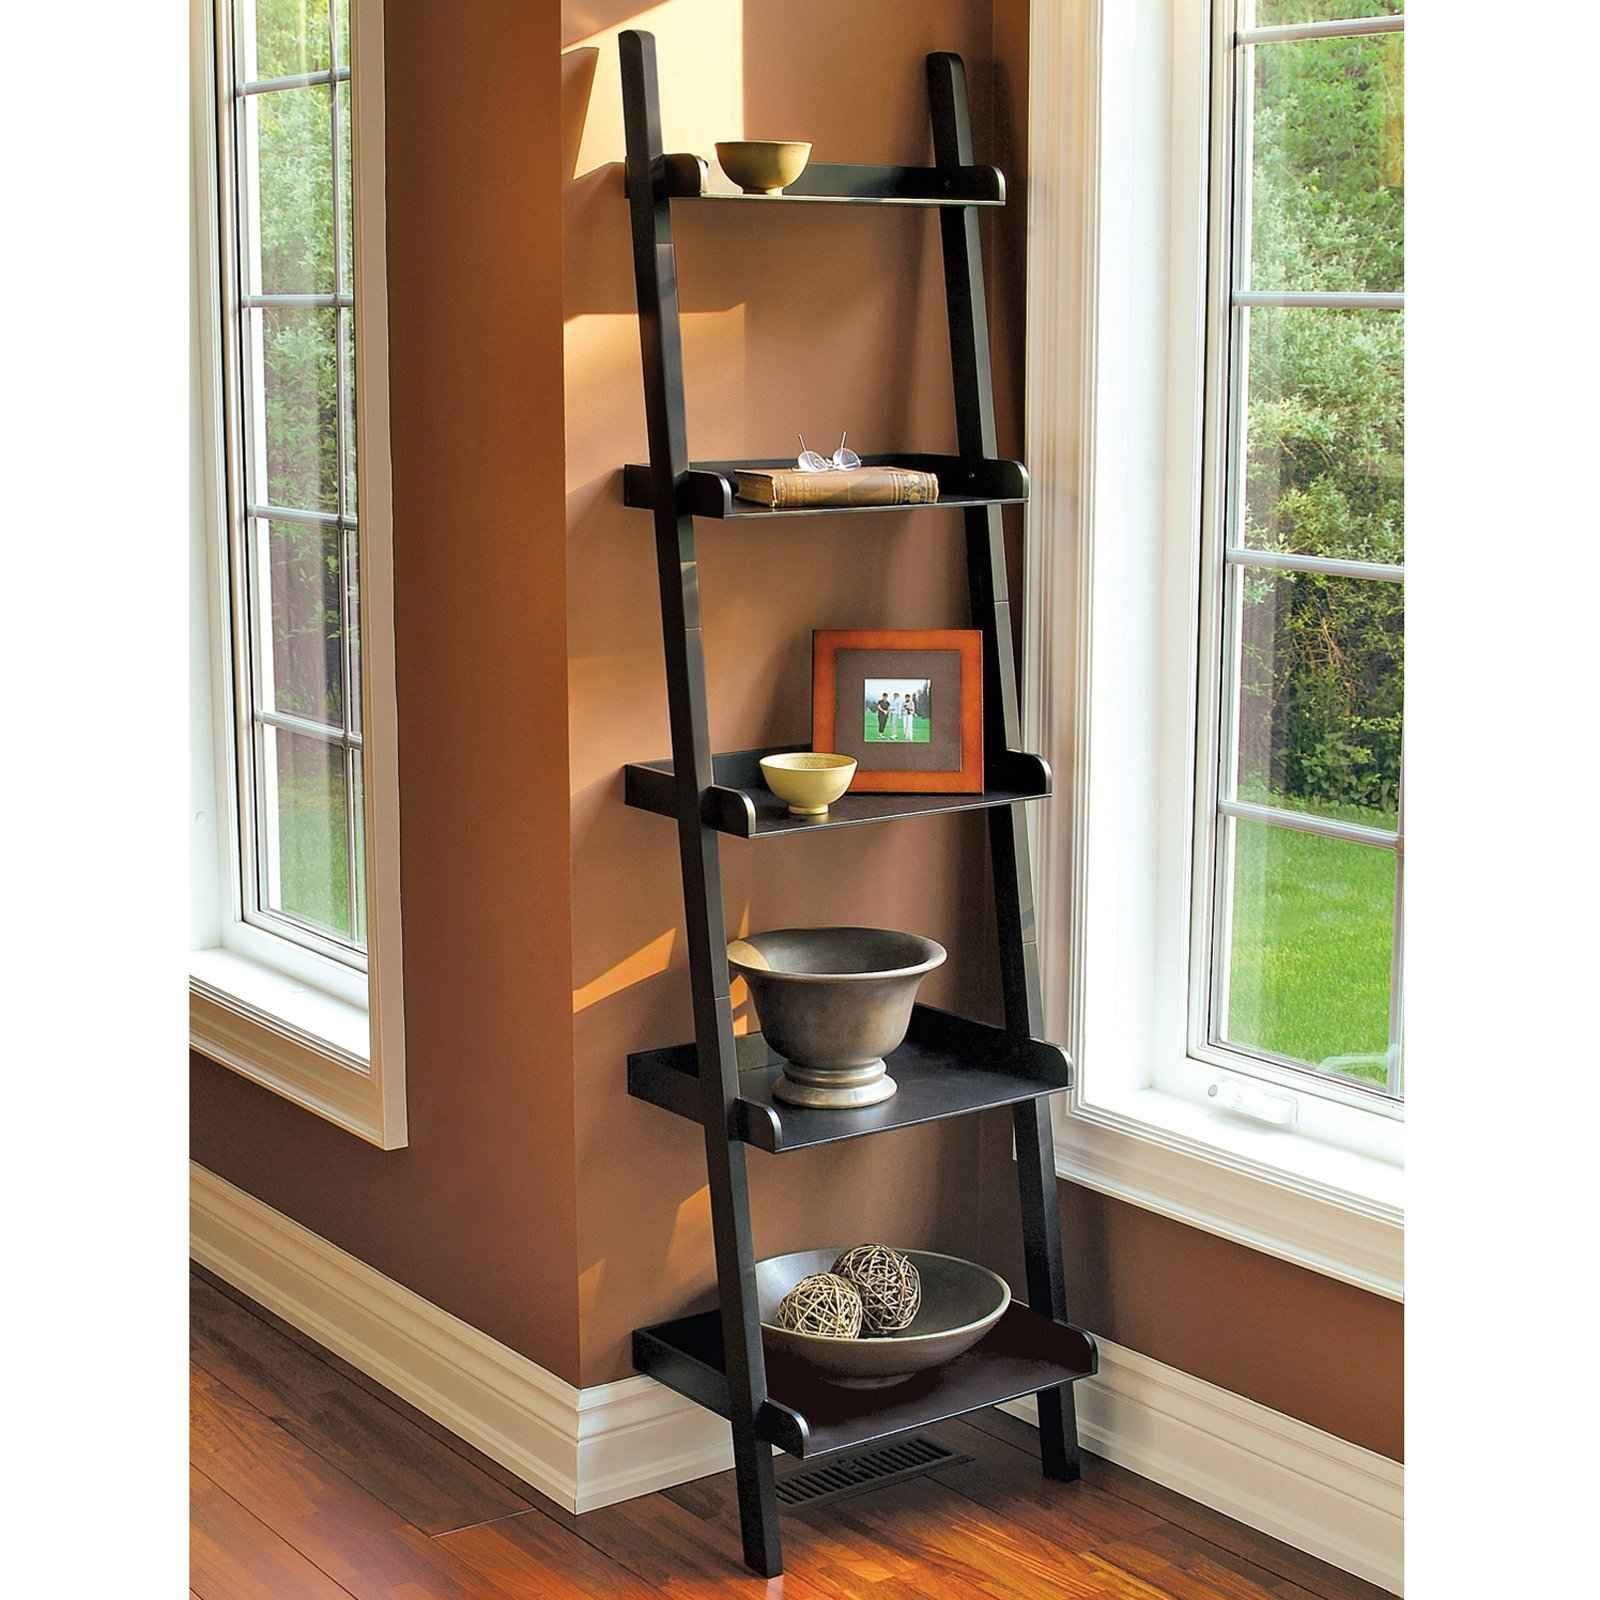 Leaning Bookshelf Ladder Bookcase Ladder Bookshelf Leaning Bookcase